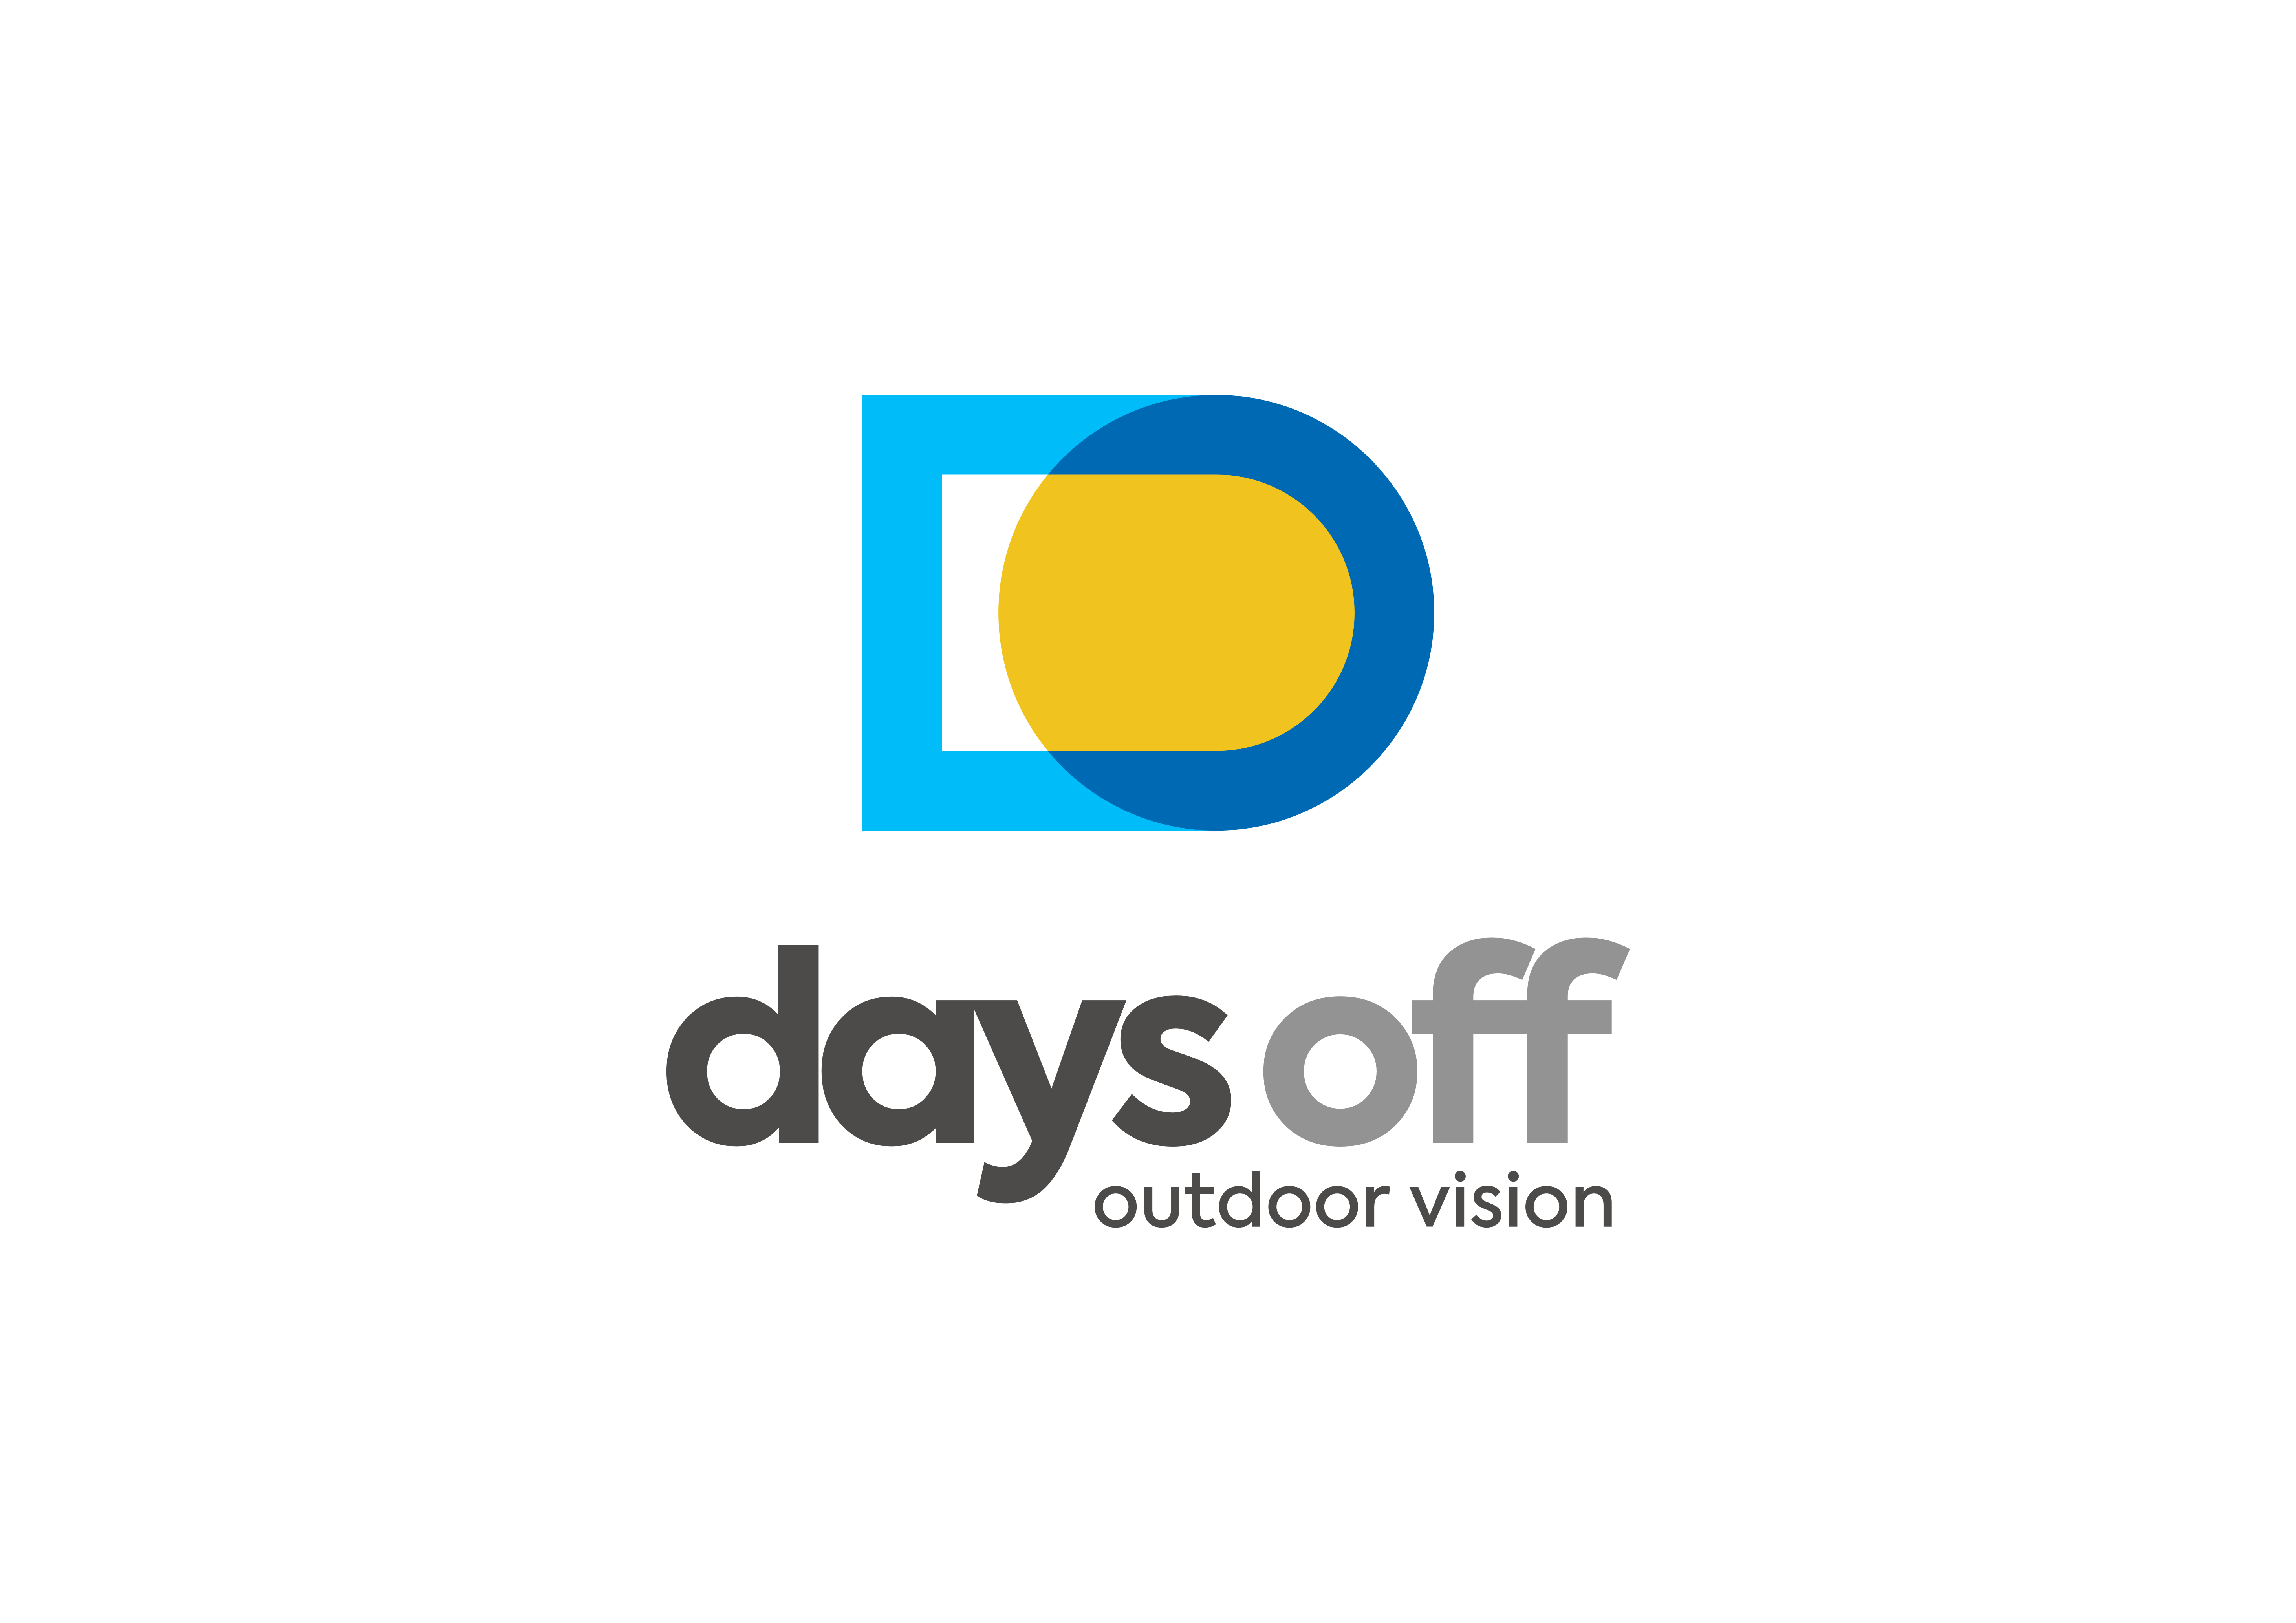 Take some days off outdoor